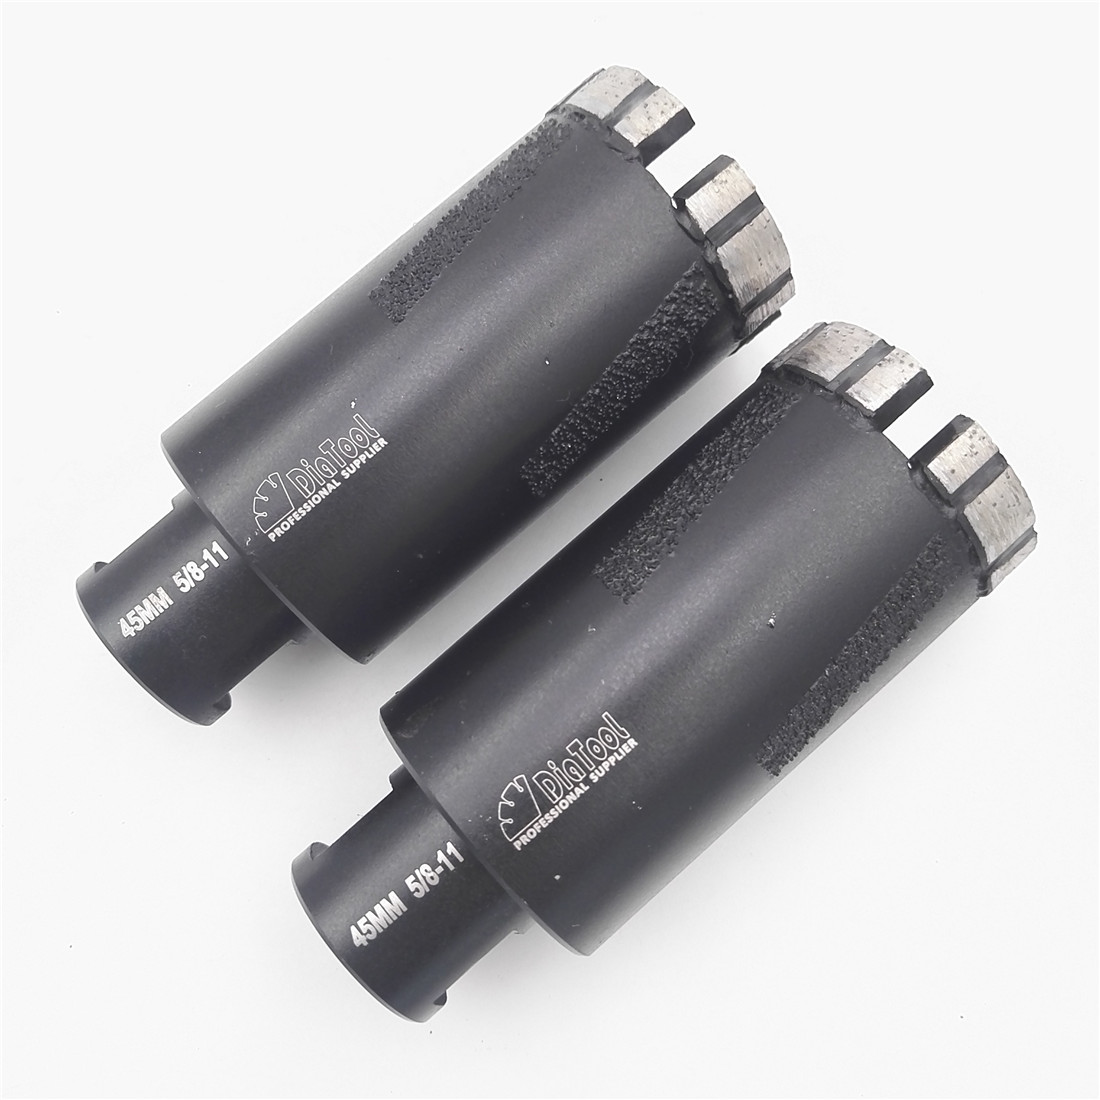 DIATOOL 2pcs Laser Welded Diameter 45mm Diamond Dry Drilling Core Bits With Side Protection 5/8-11 Thread<br>